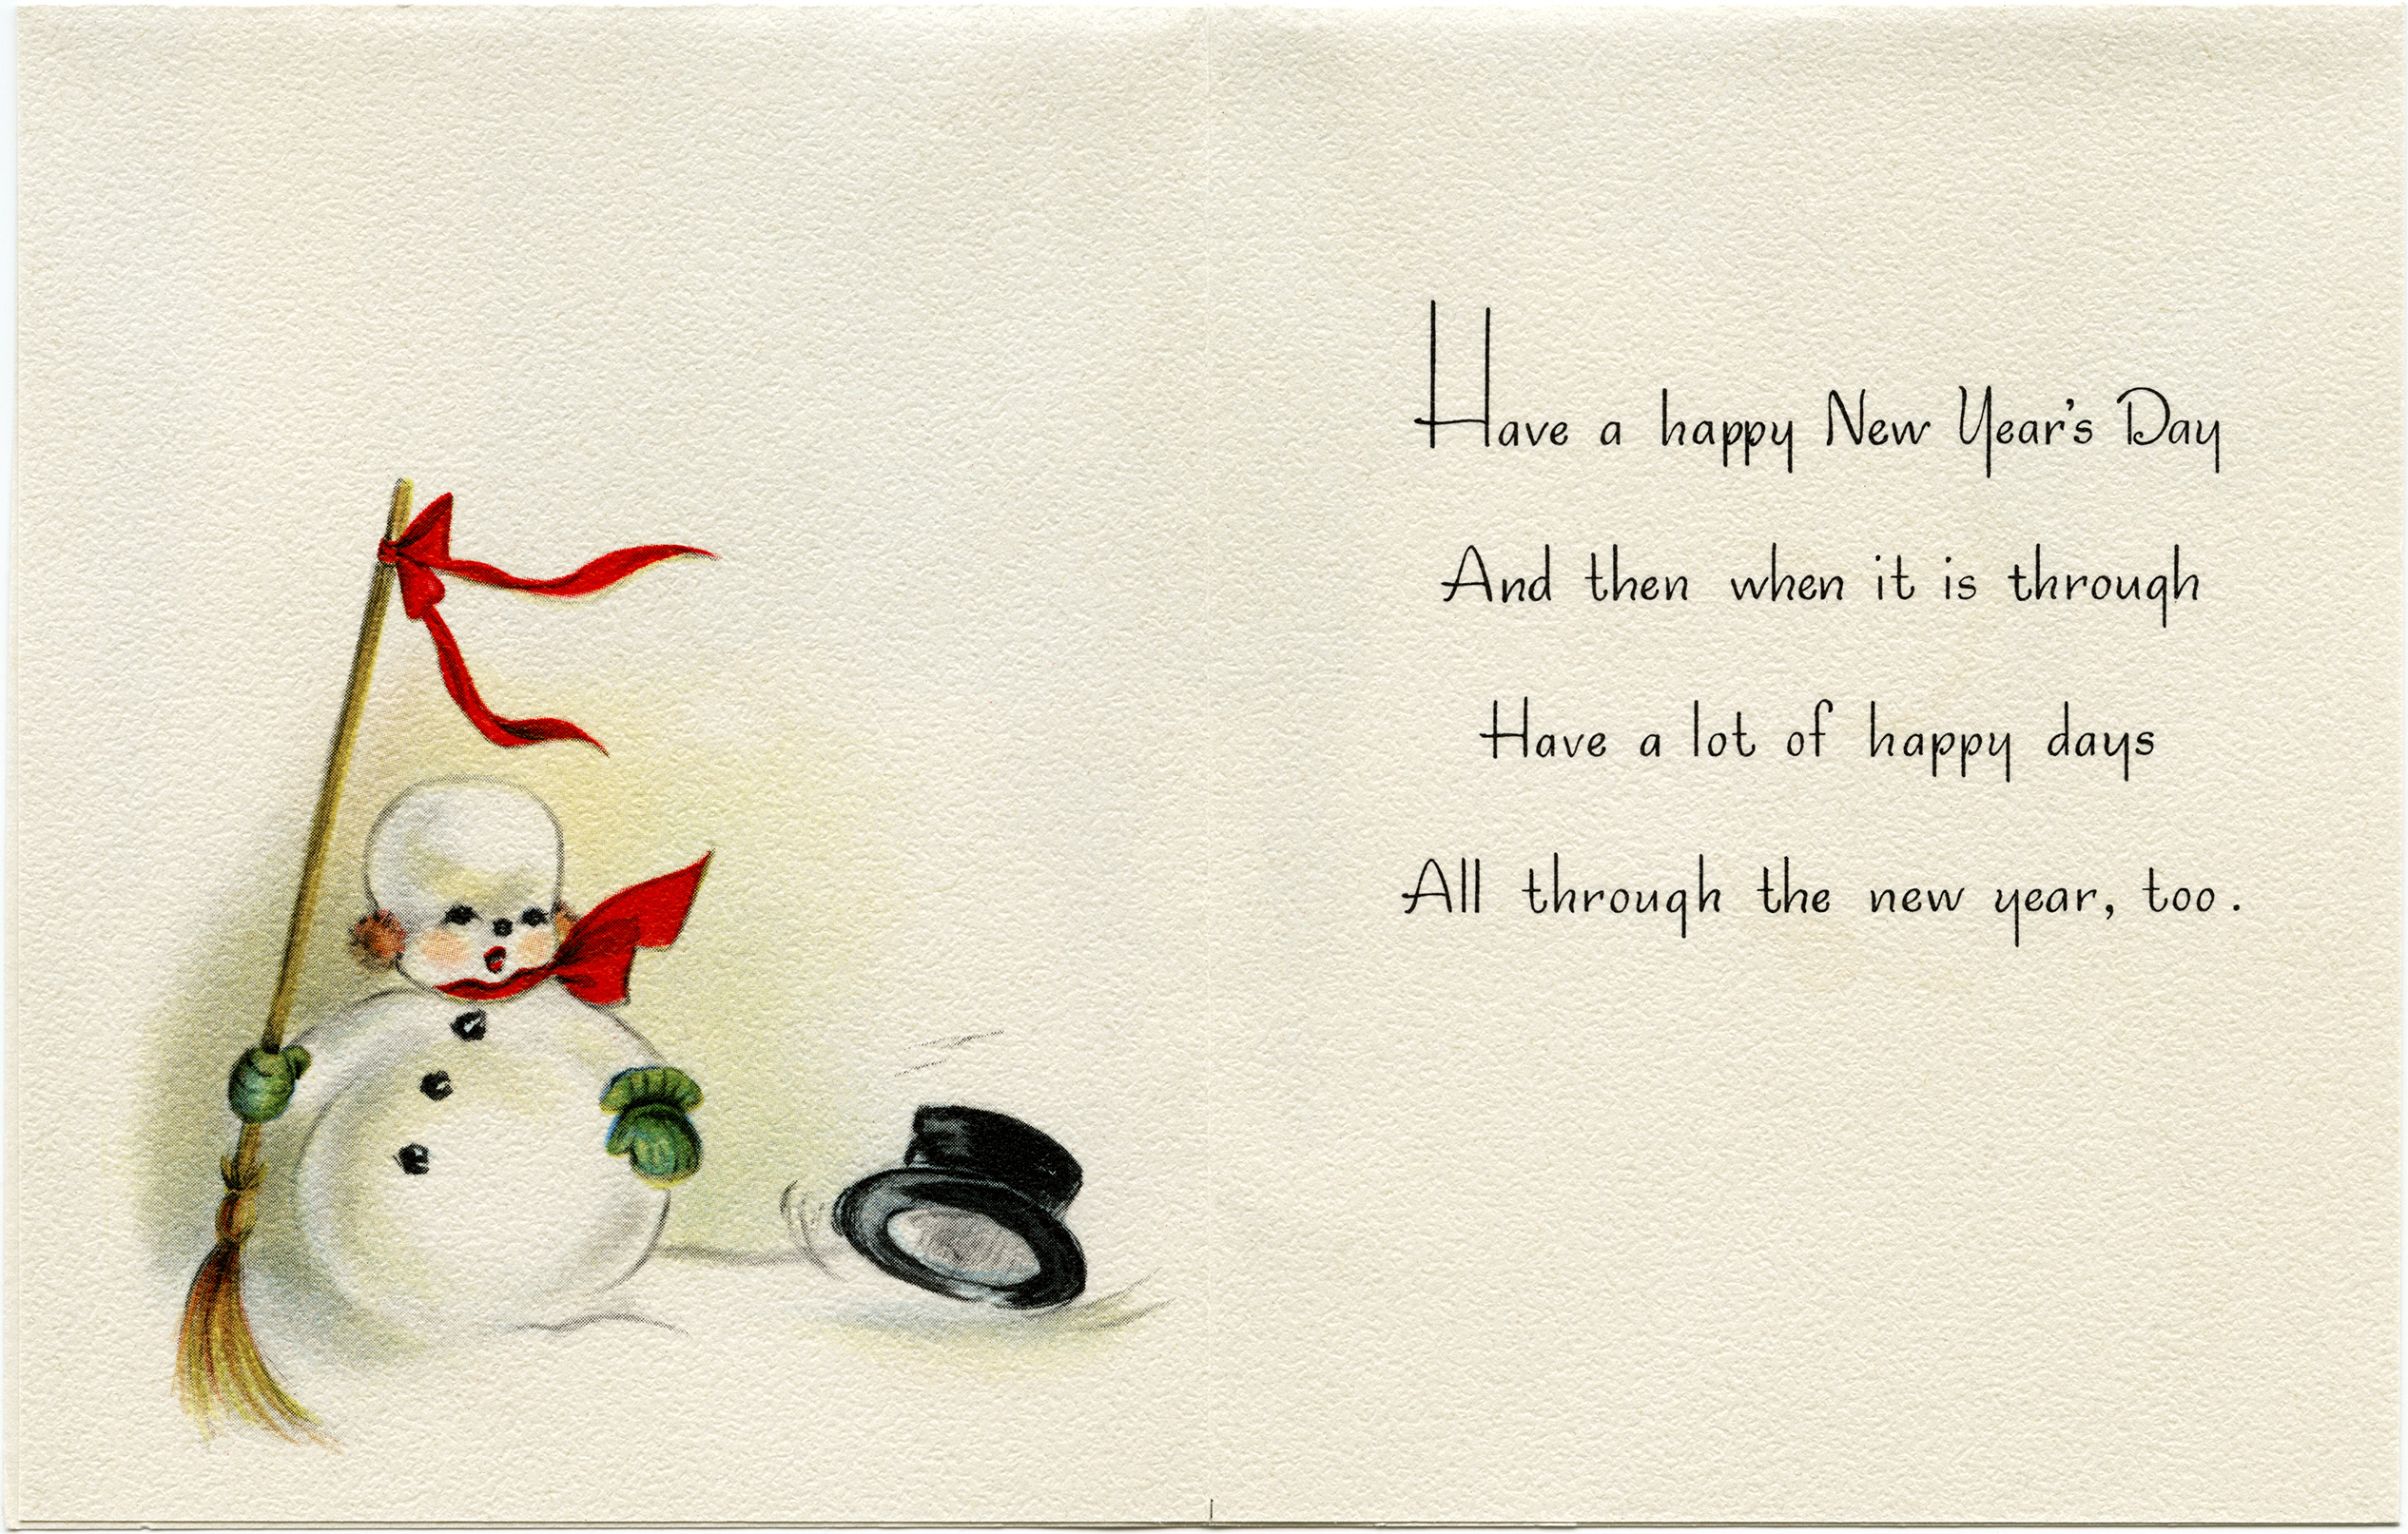 news year new year cards